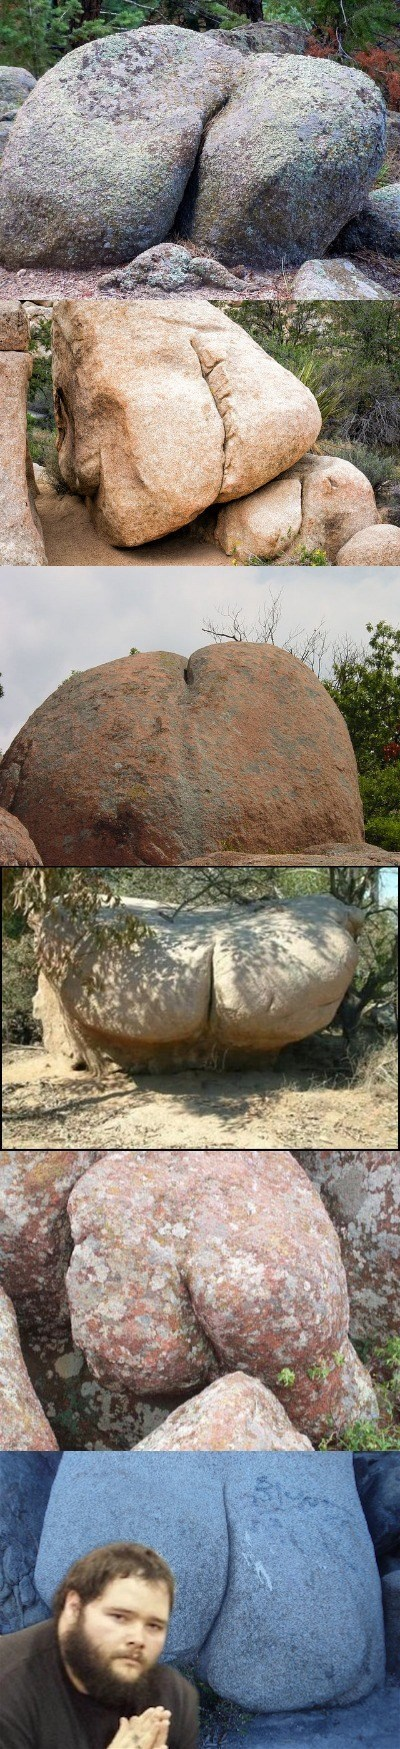 butts rocks magic the gathering buttcracks - 8584282368